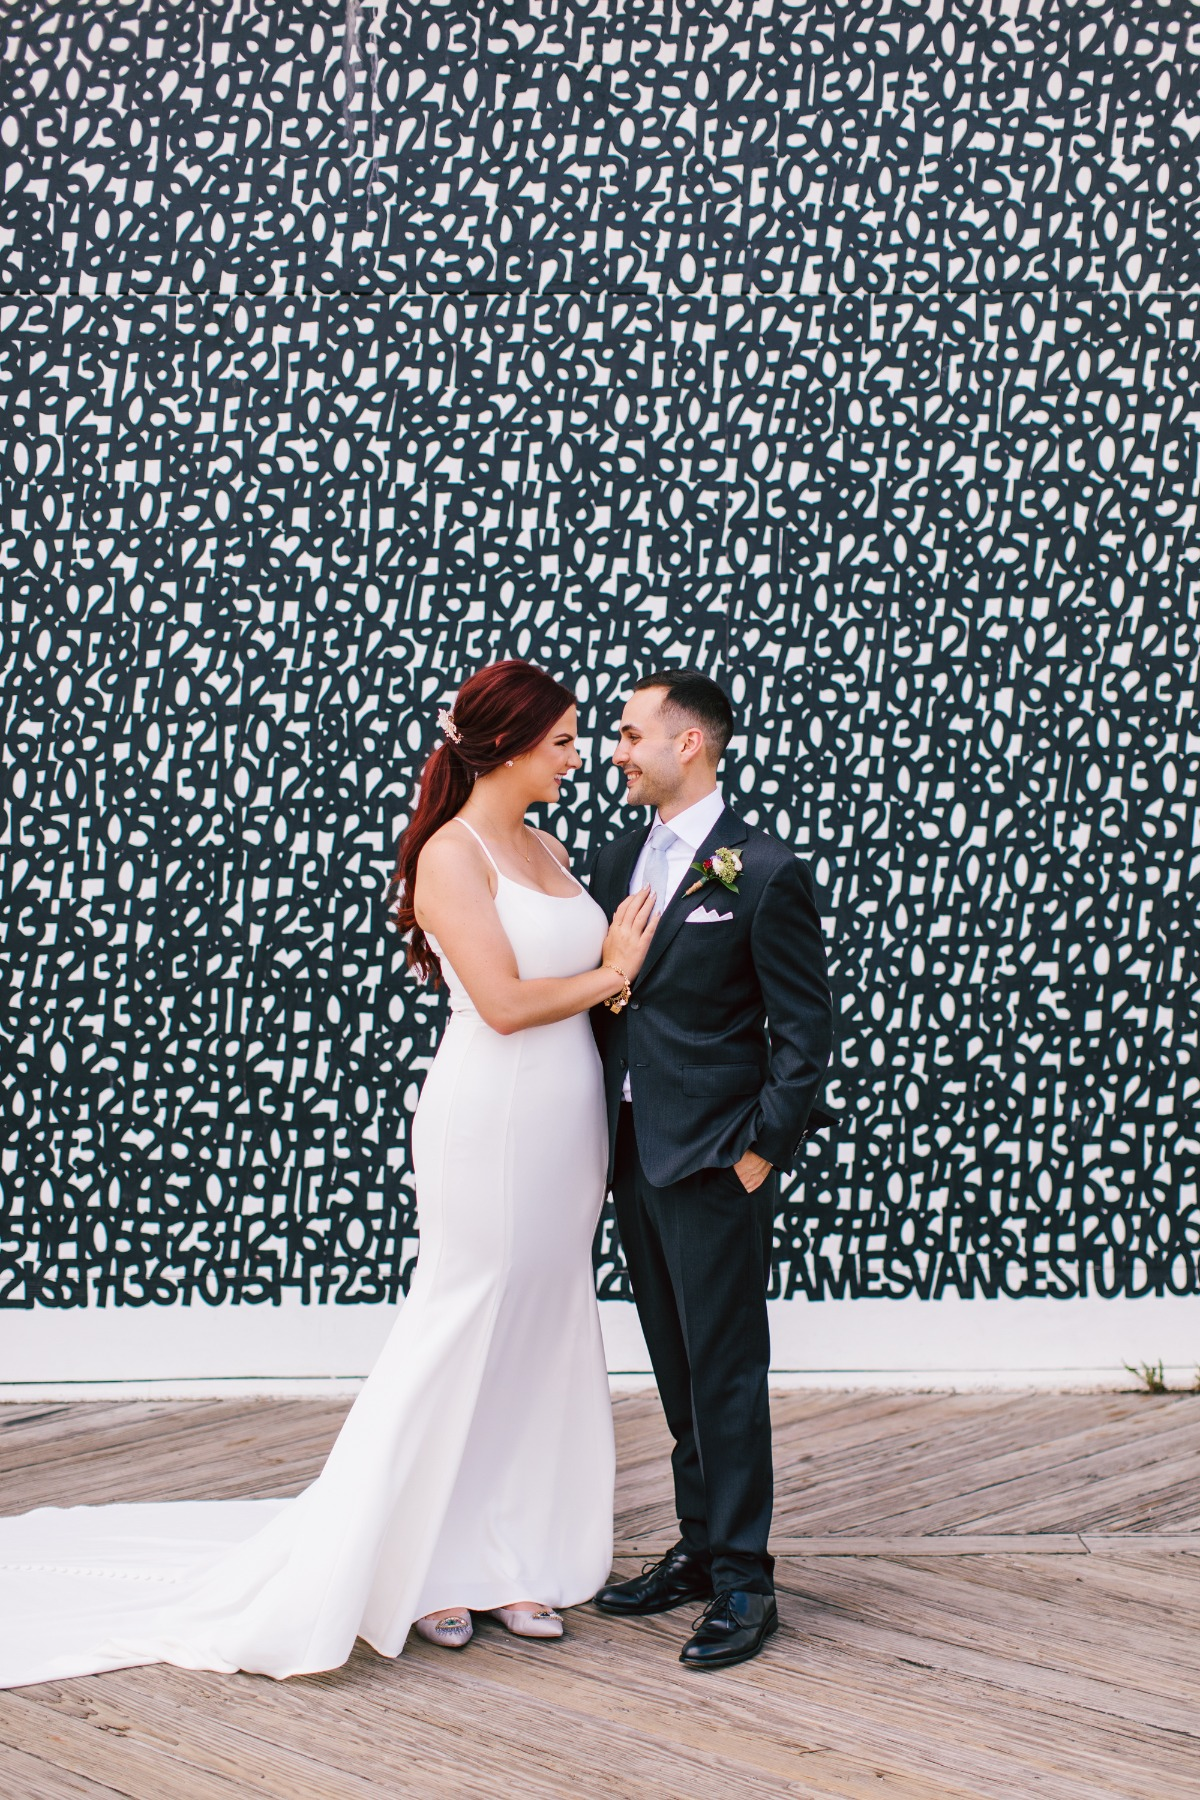 portraits of a wedding couple